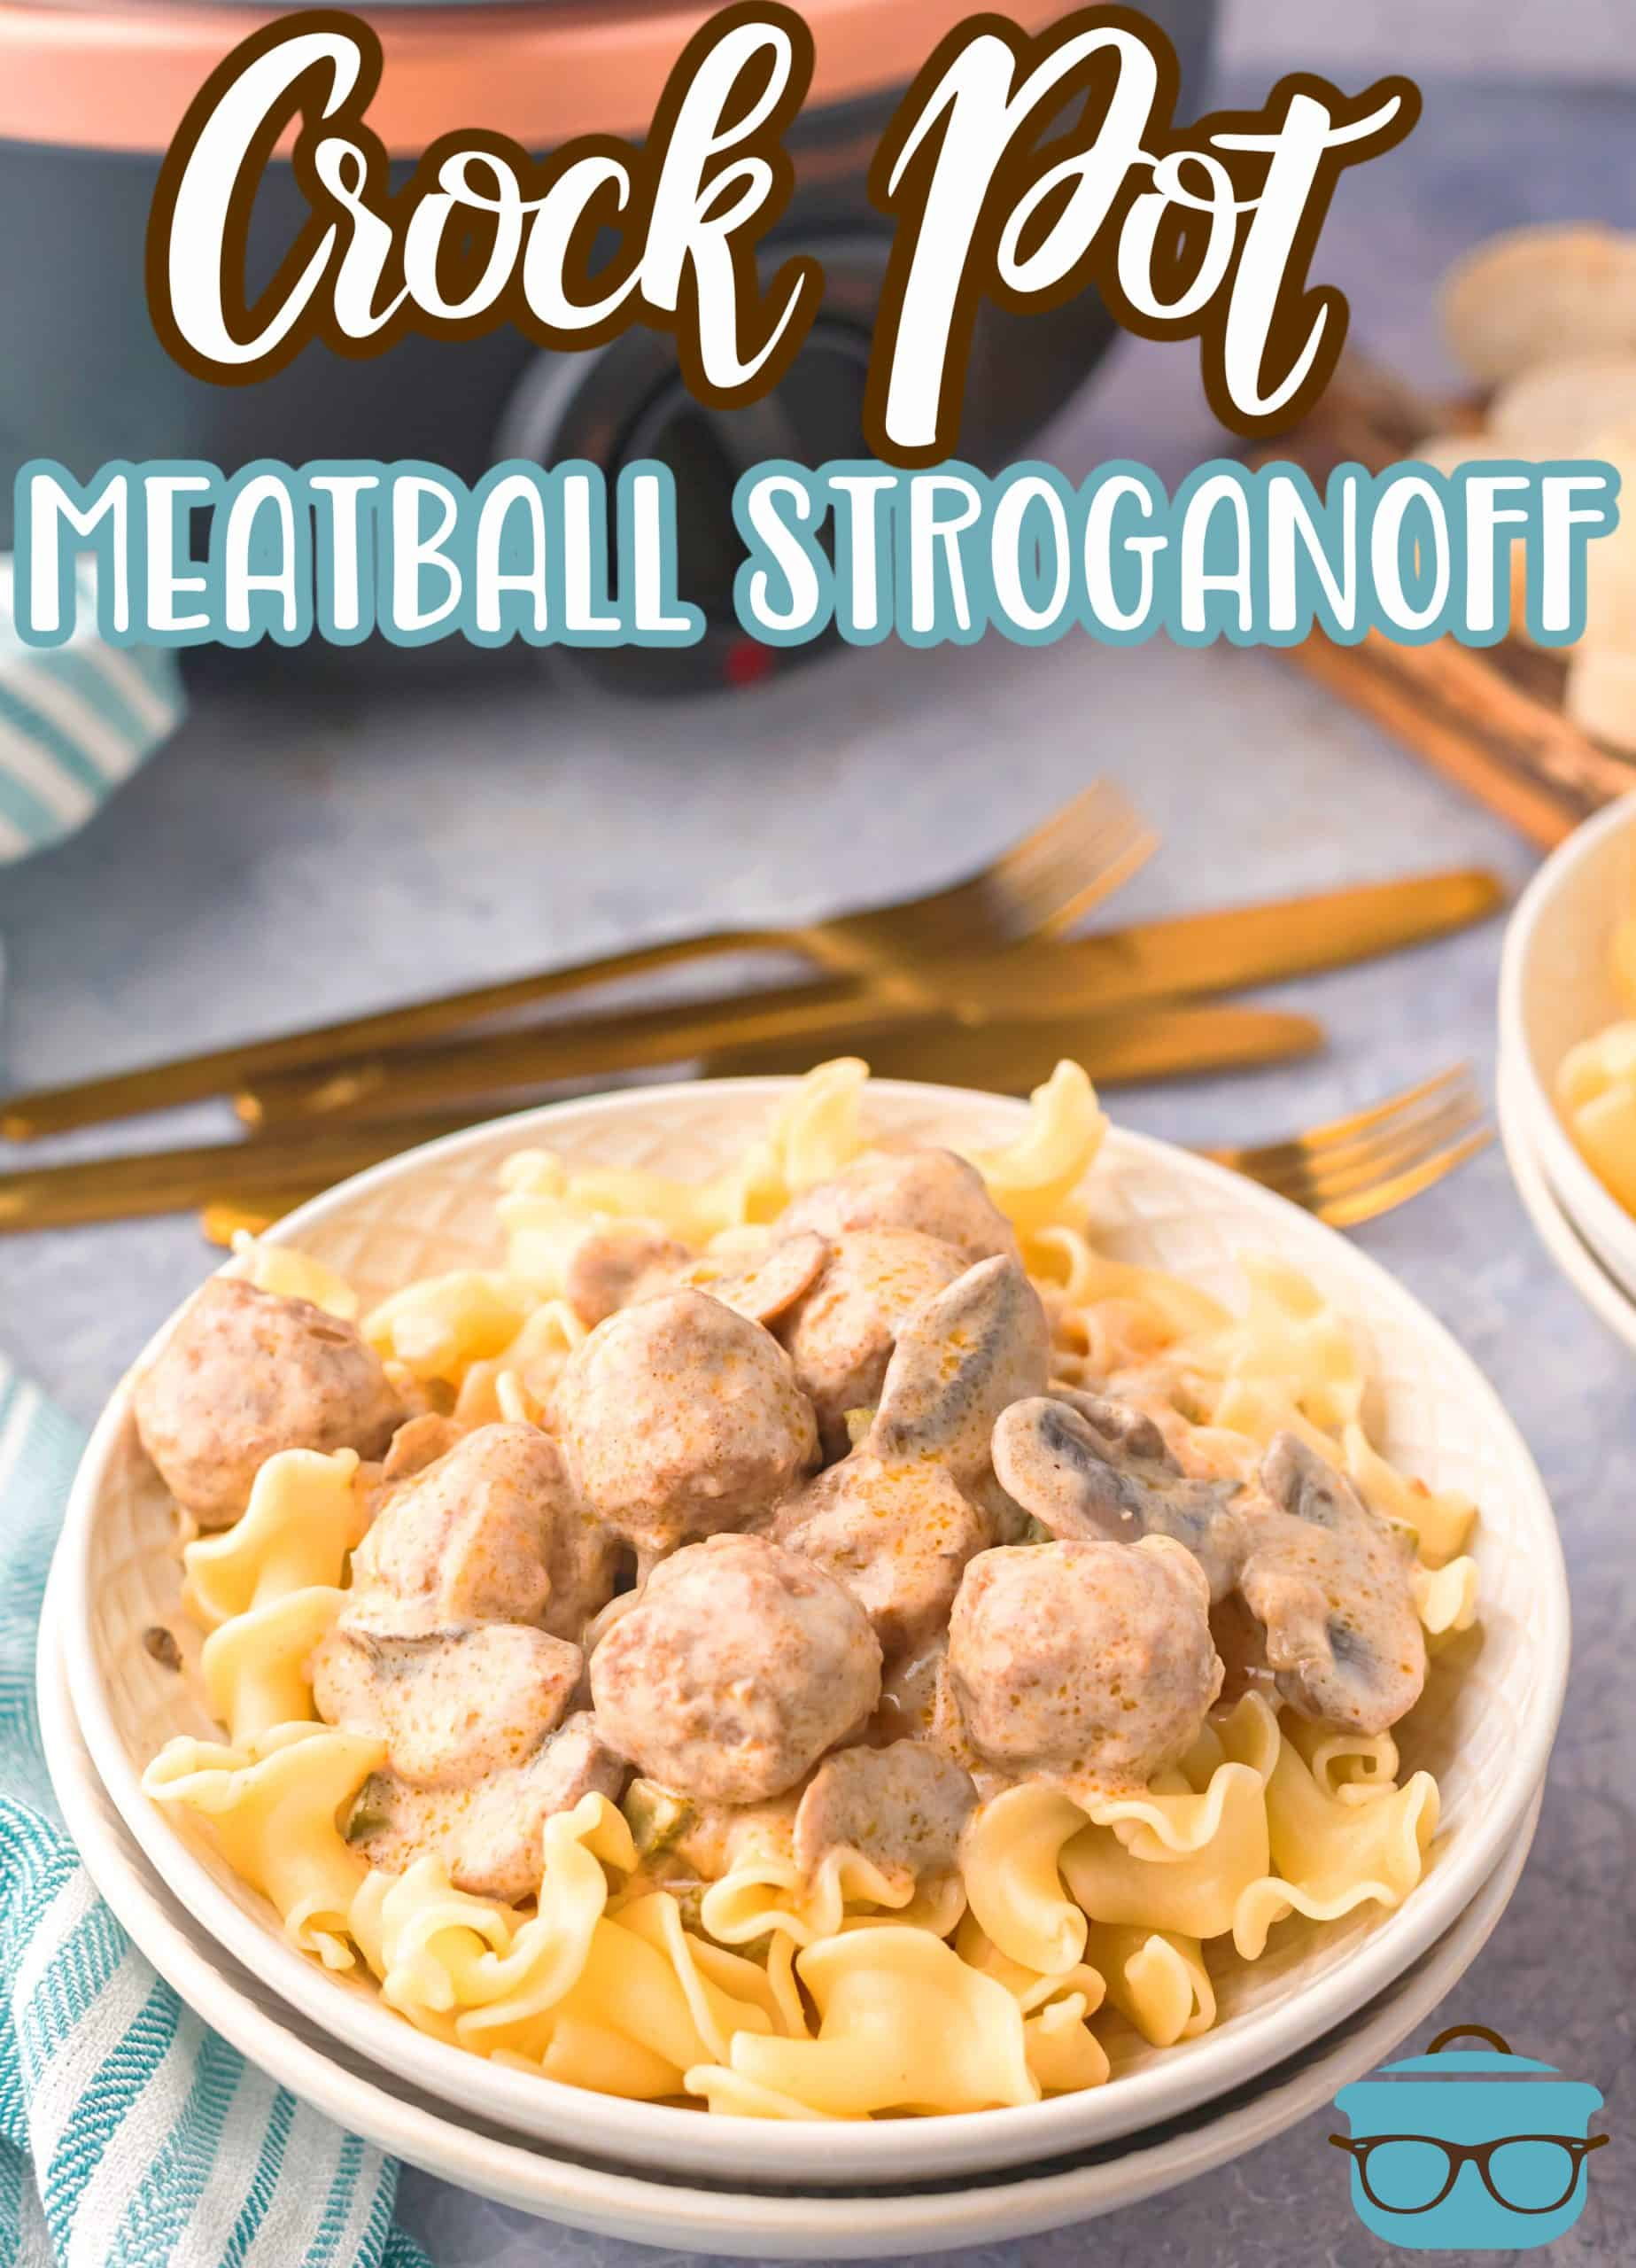 Cooked low and slow, this Crock Pot Meatball Stroganoff is made with simple, easy-to-find ingredients and served over mashed potatoes or noodles. The perfect easy weeknight dinner for the family!